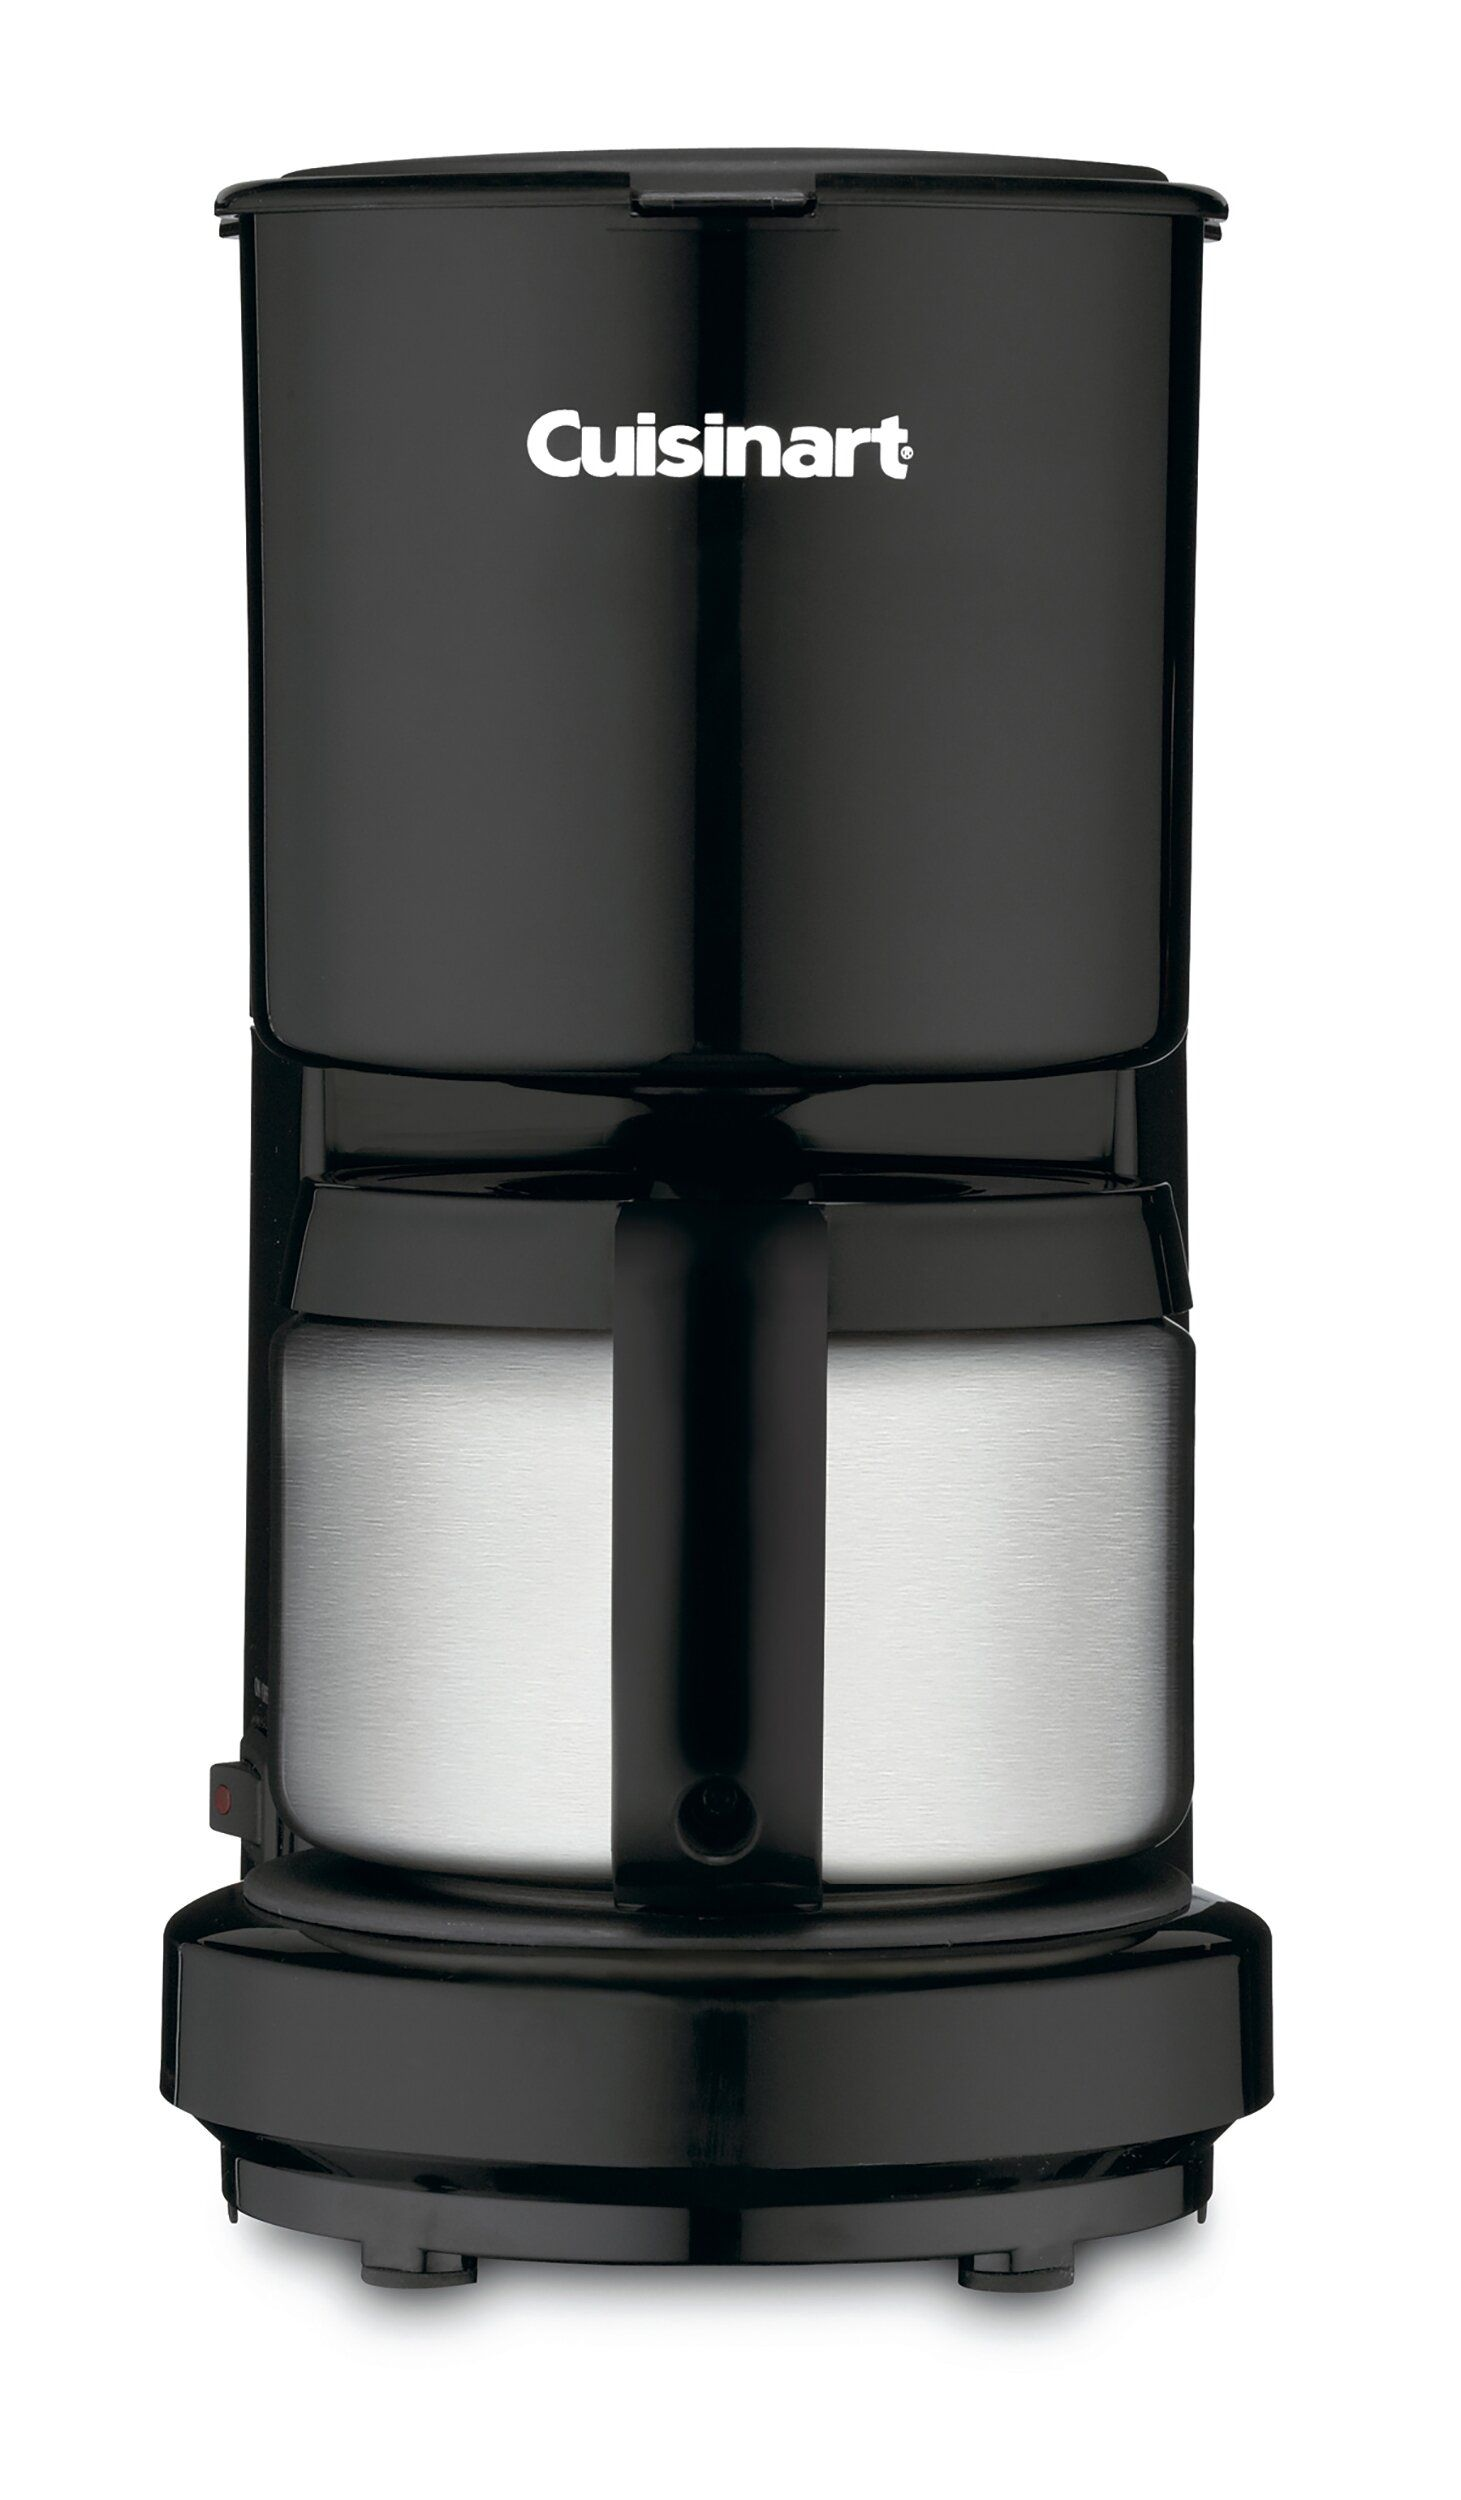 Cuisinart 4 Cup Coffee Maker With Stainless Steel Carafe Black In 2021 Thermal Coffee Maker 4 Cup Coffee Maker Cuisinart Coffee Maker Coffee maker with stainless steel carafe